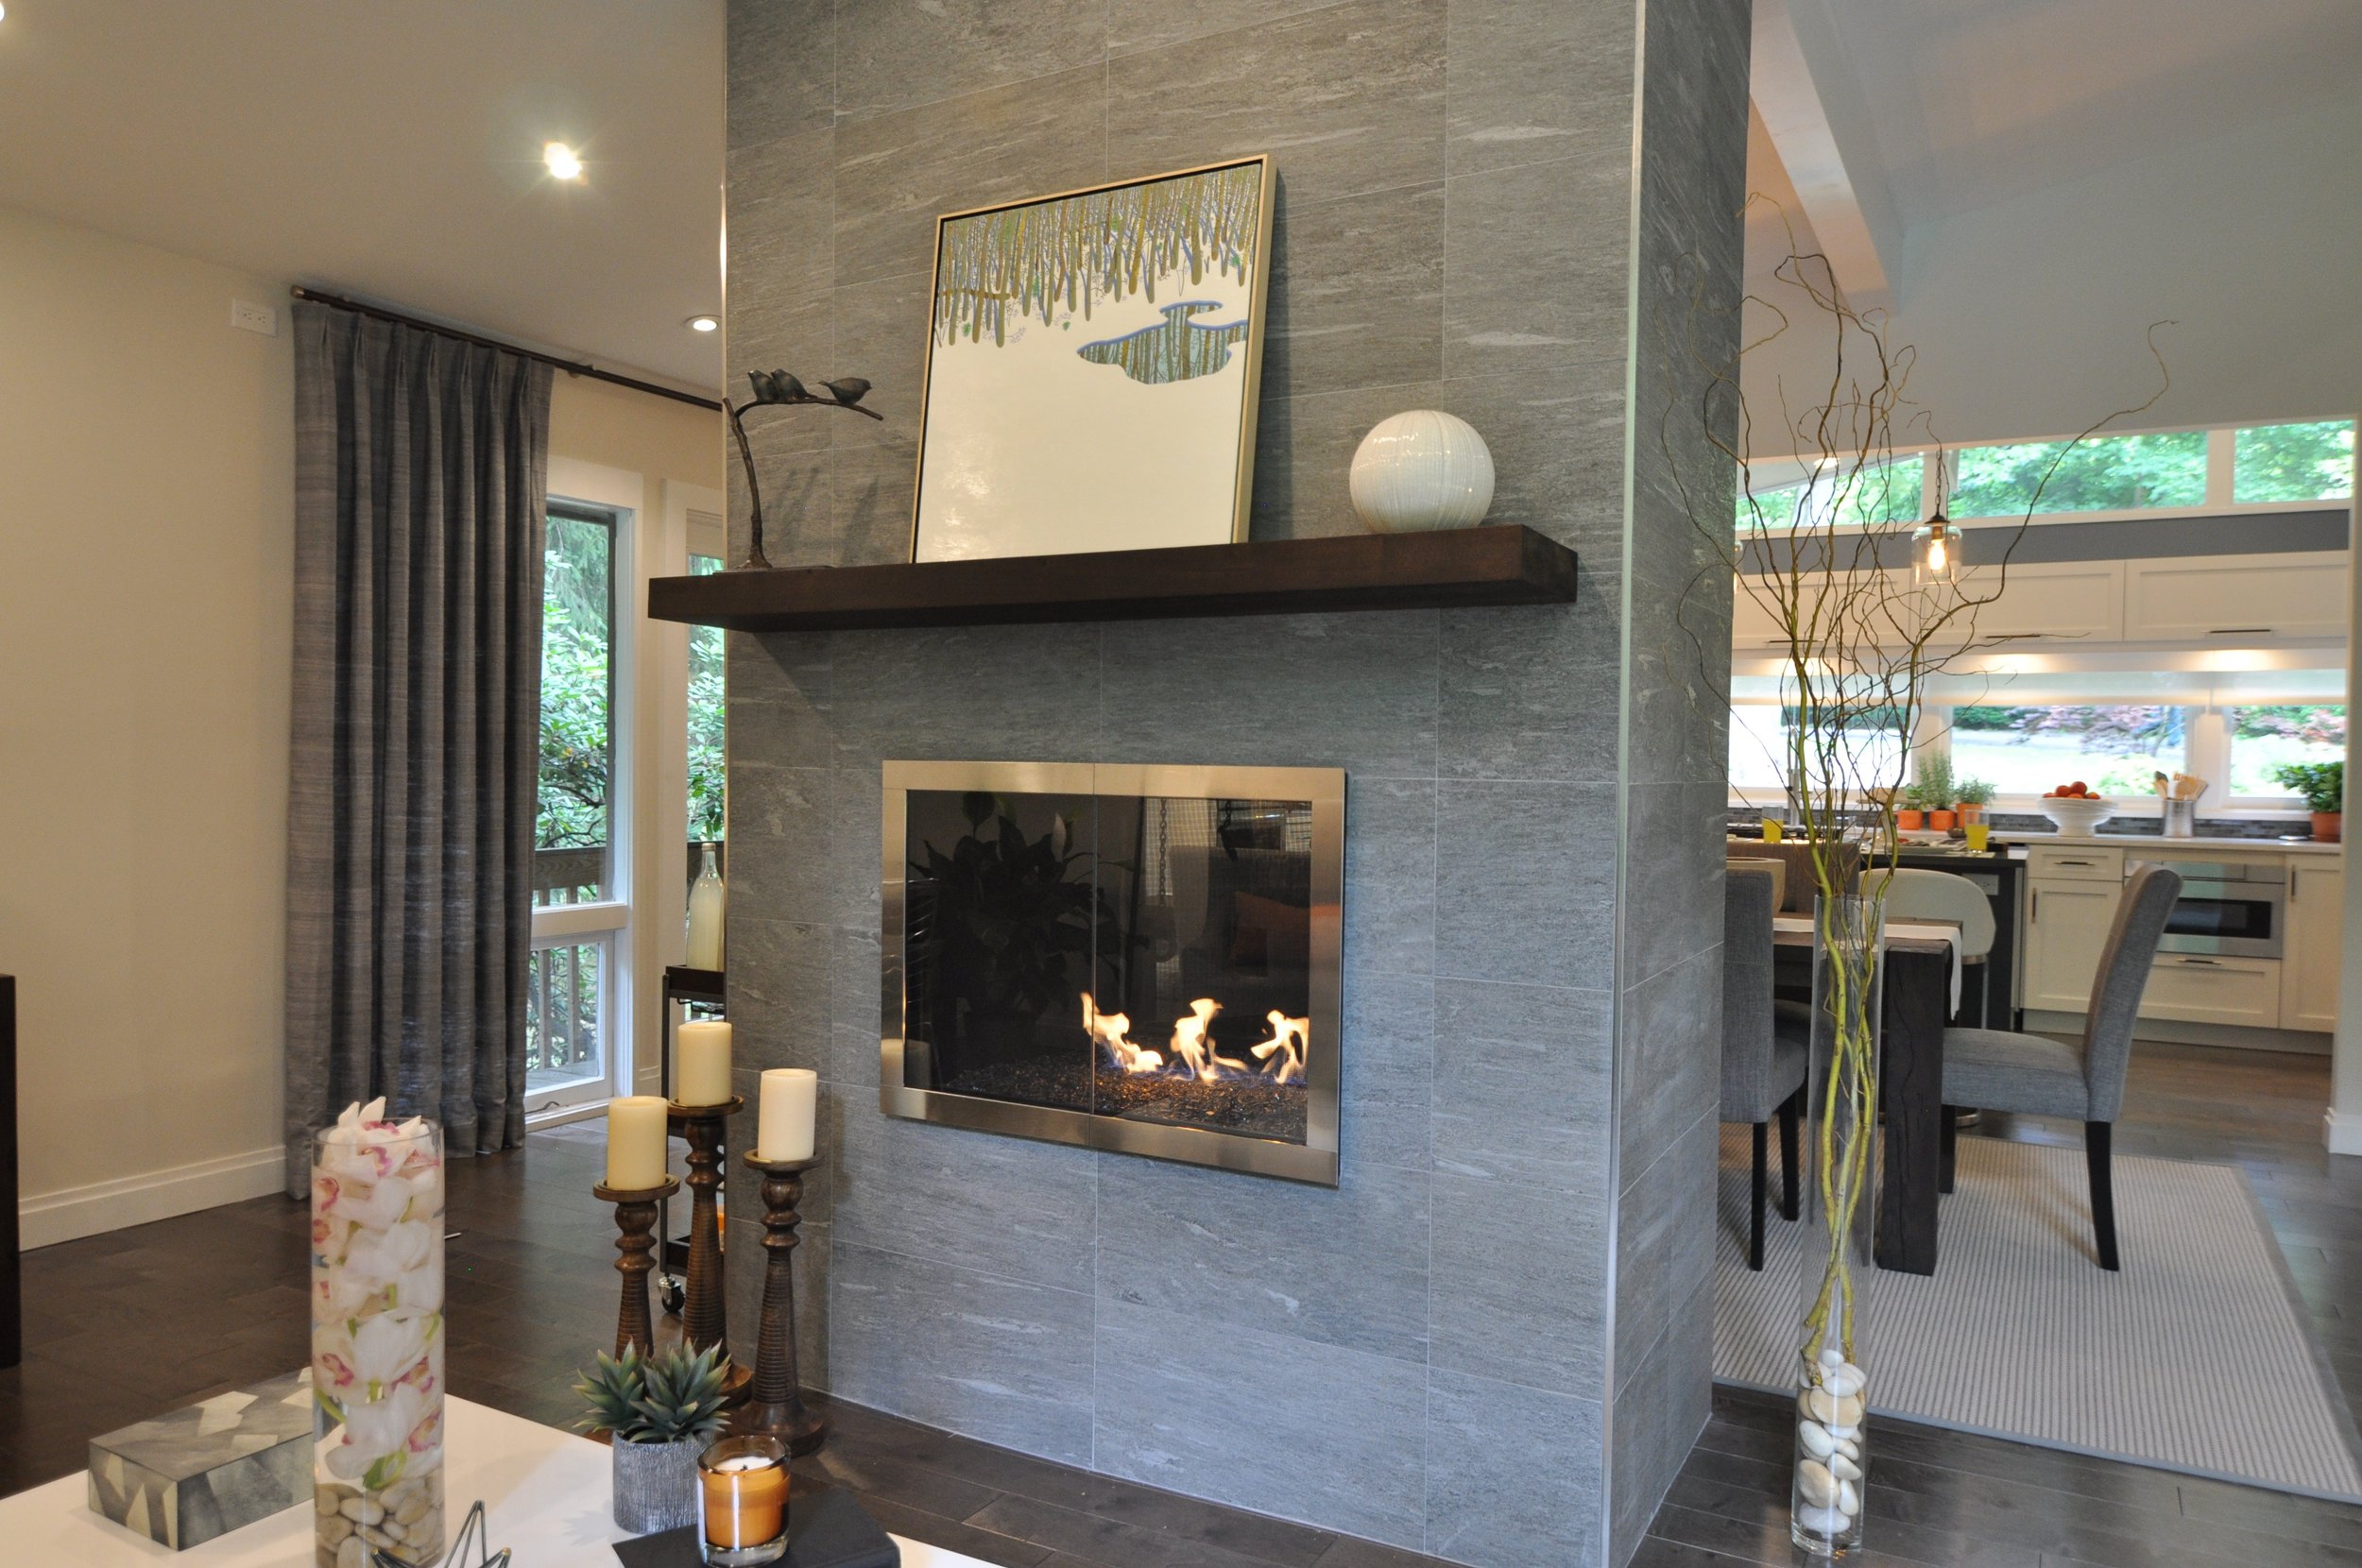 Kim A Mitchell_Design Lead_HGTV_The Property Brothers_Fireplace Tile Wall_Gas Fireplace_Mantel_Art.jpg